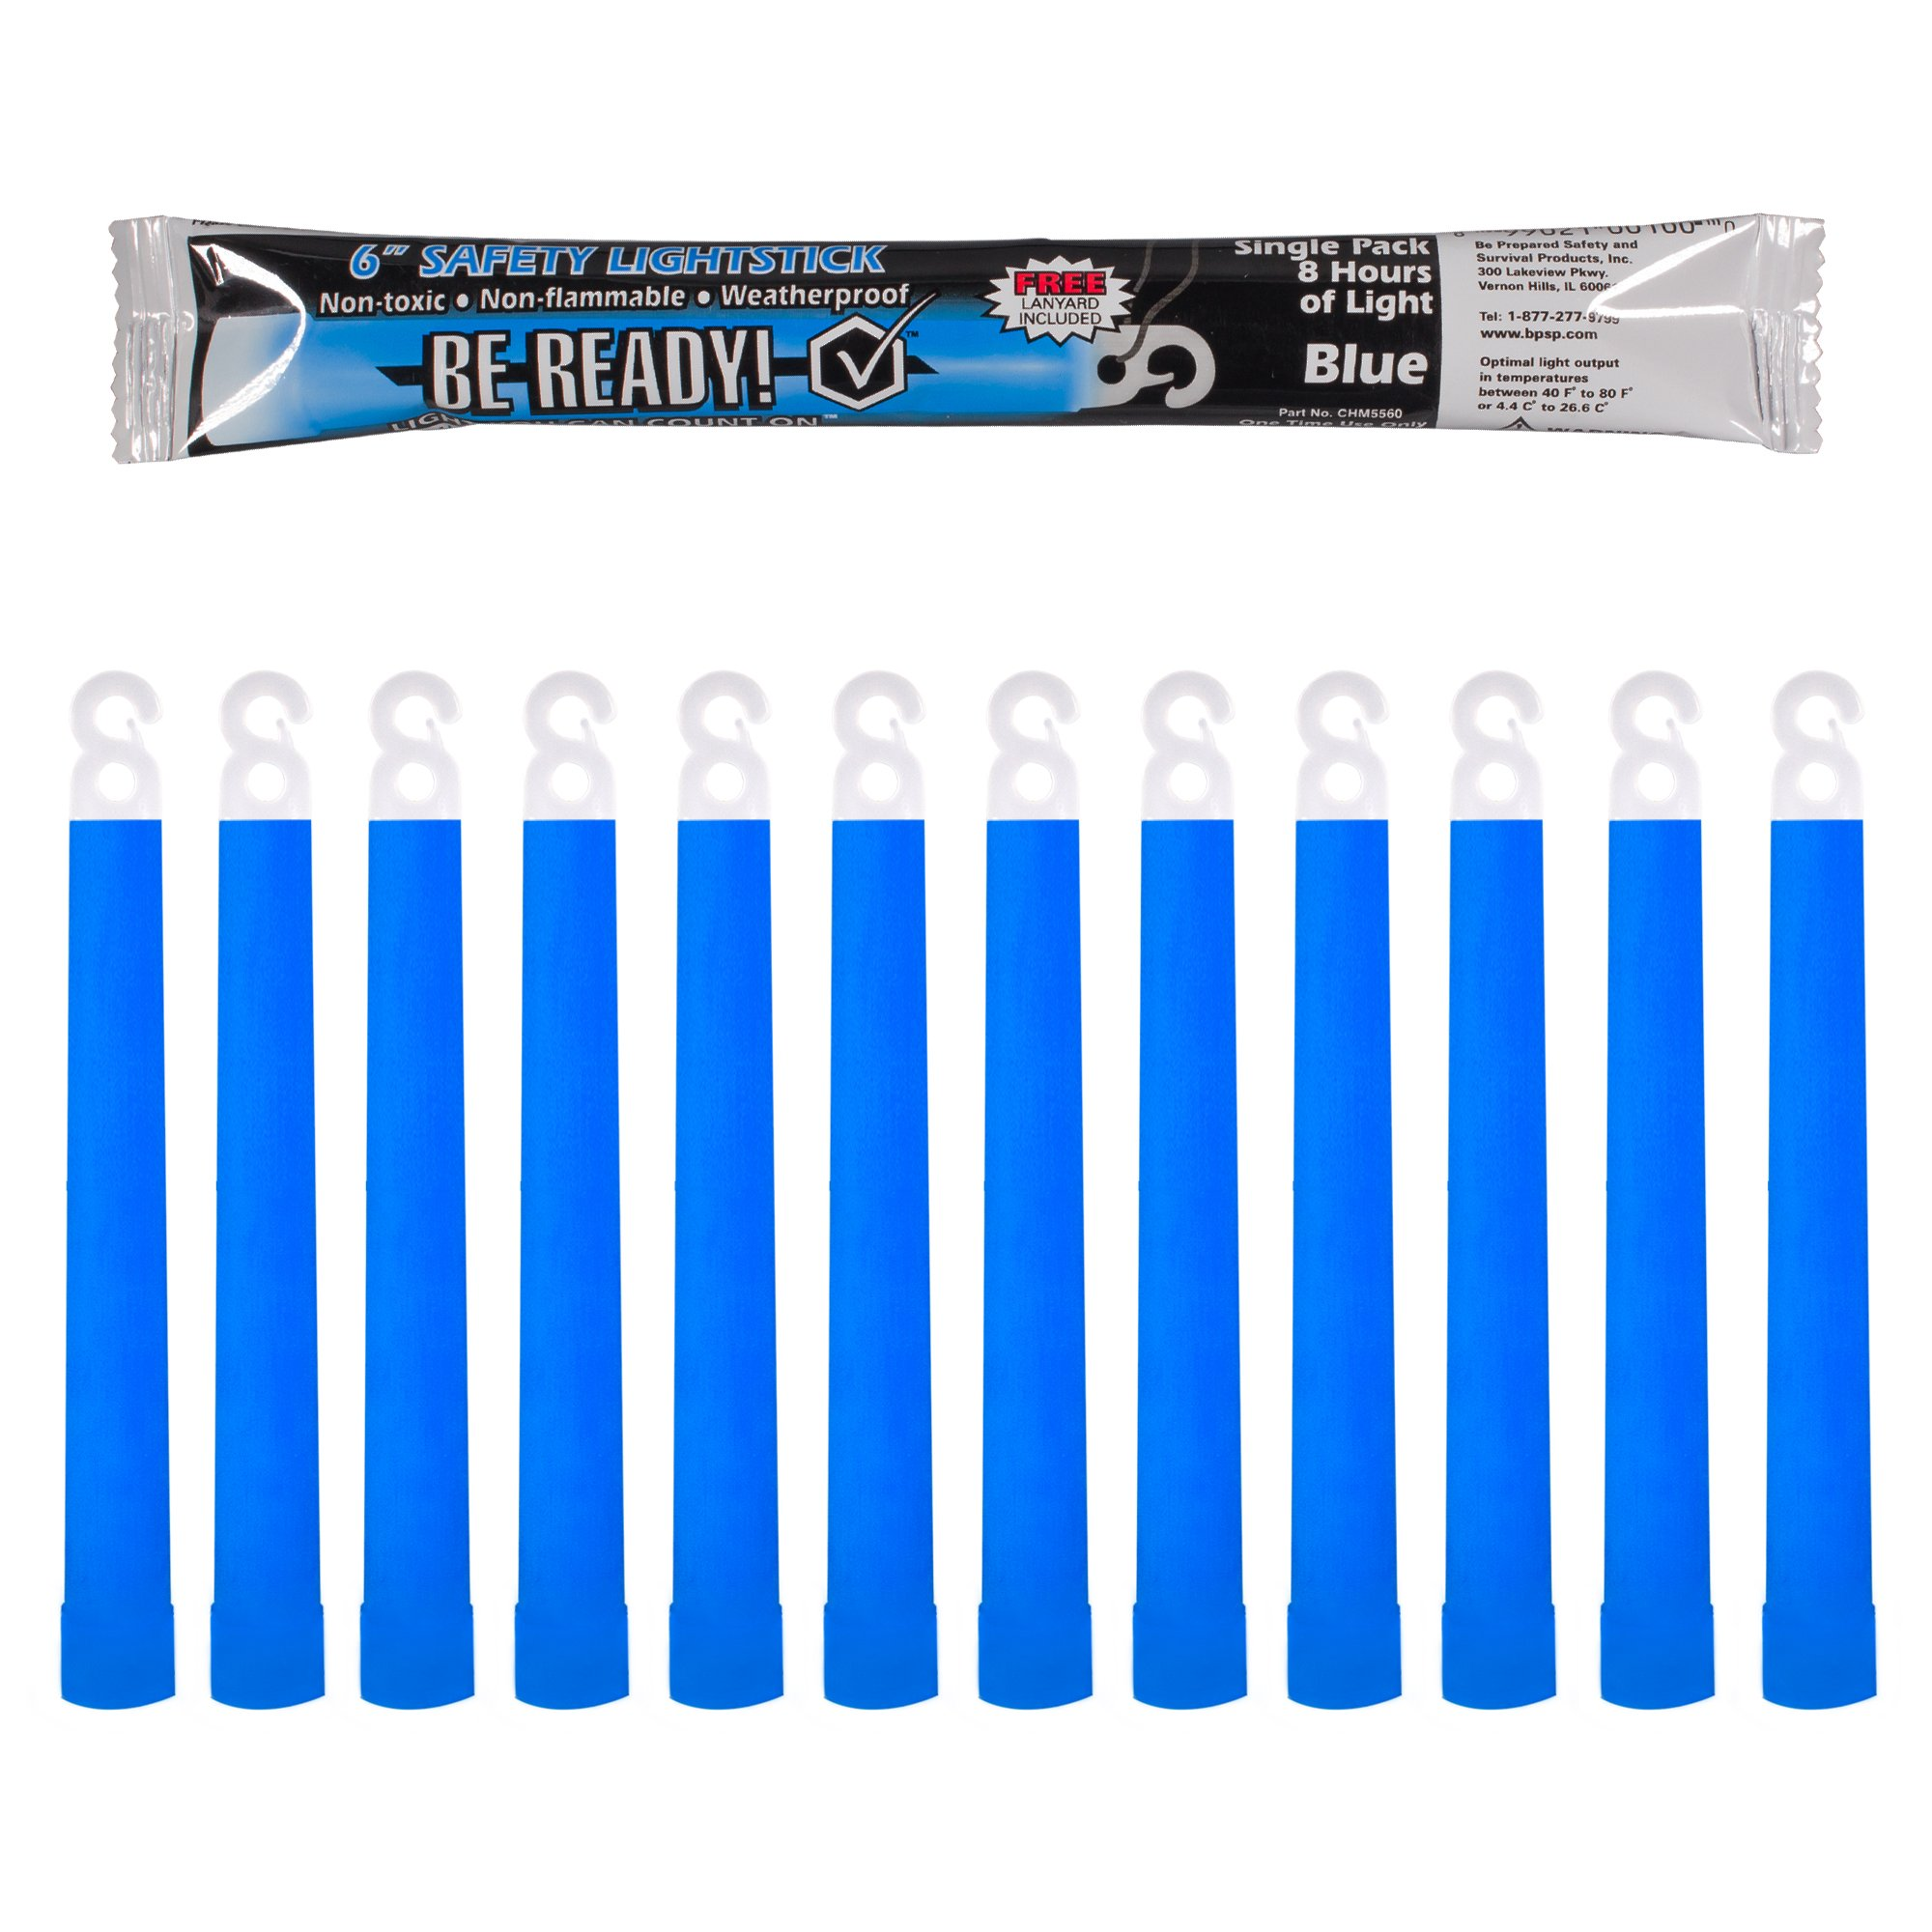 Be Ready Blue Glow Sticks - Industrial Grade 8+ Hours Illumination Emergency Safety Chemical Light Glow Sticks (24 Pack)